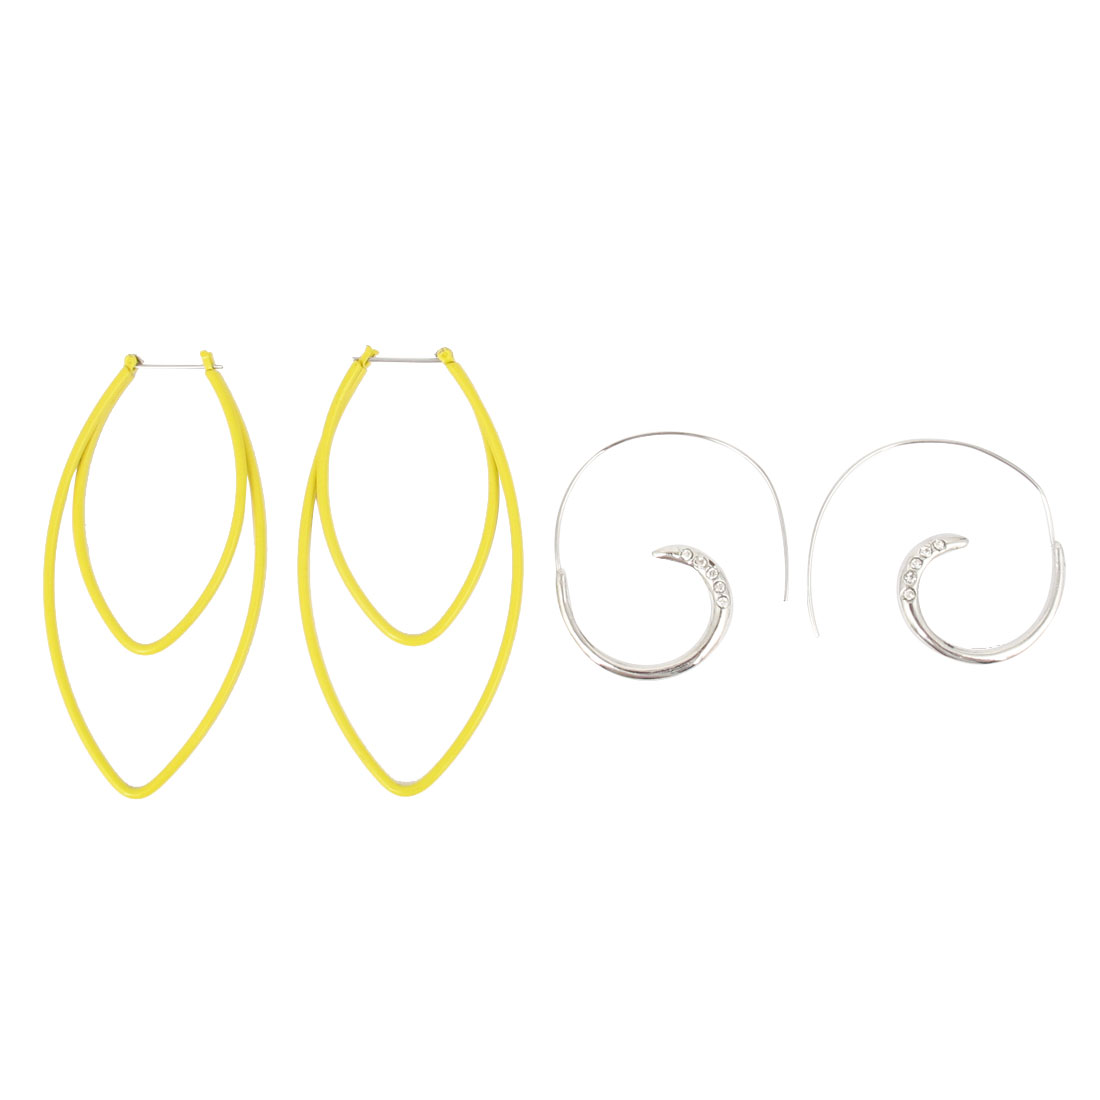 2 Pairs Gold Tone Silver Tone Metal Double Oval Design Crescent Shape Hook Stylish Earrings for Lady Women